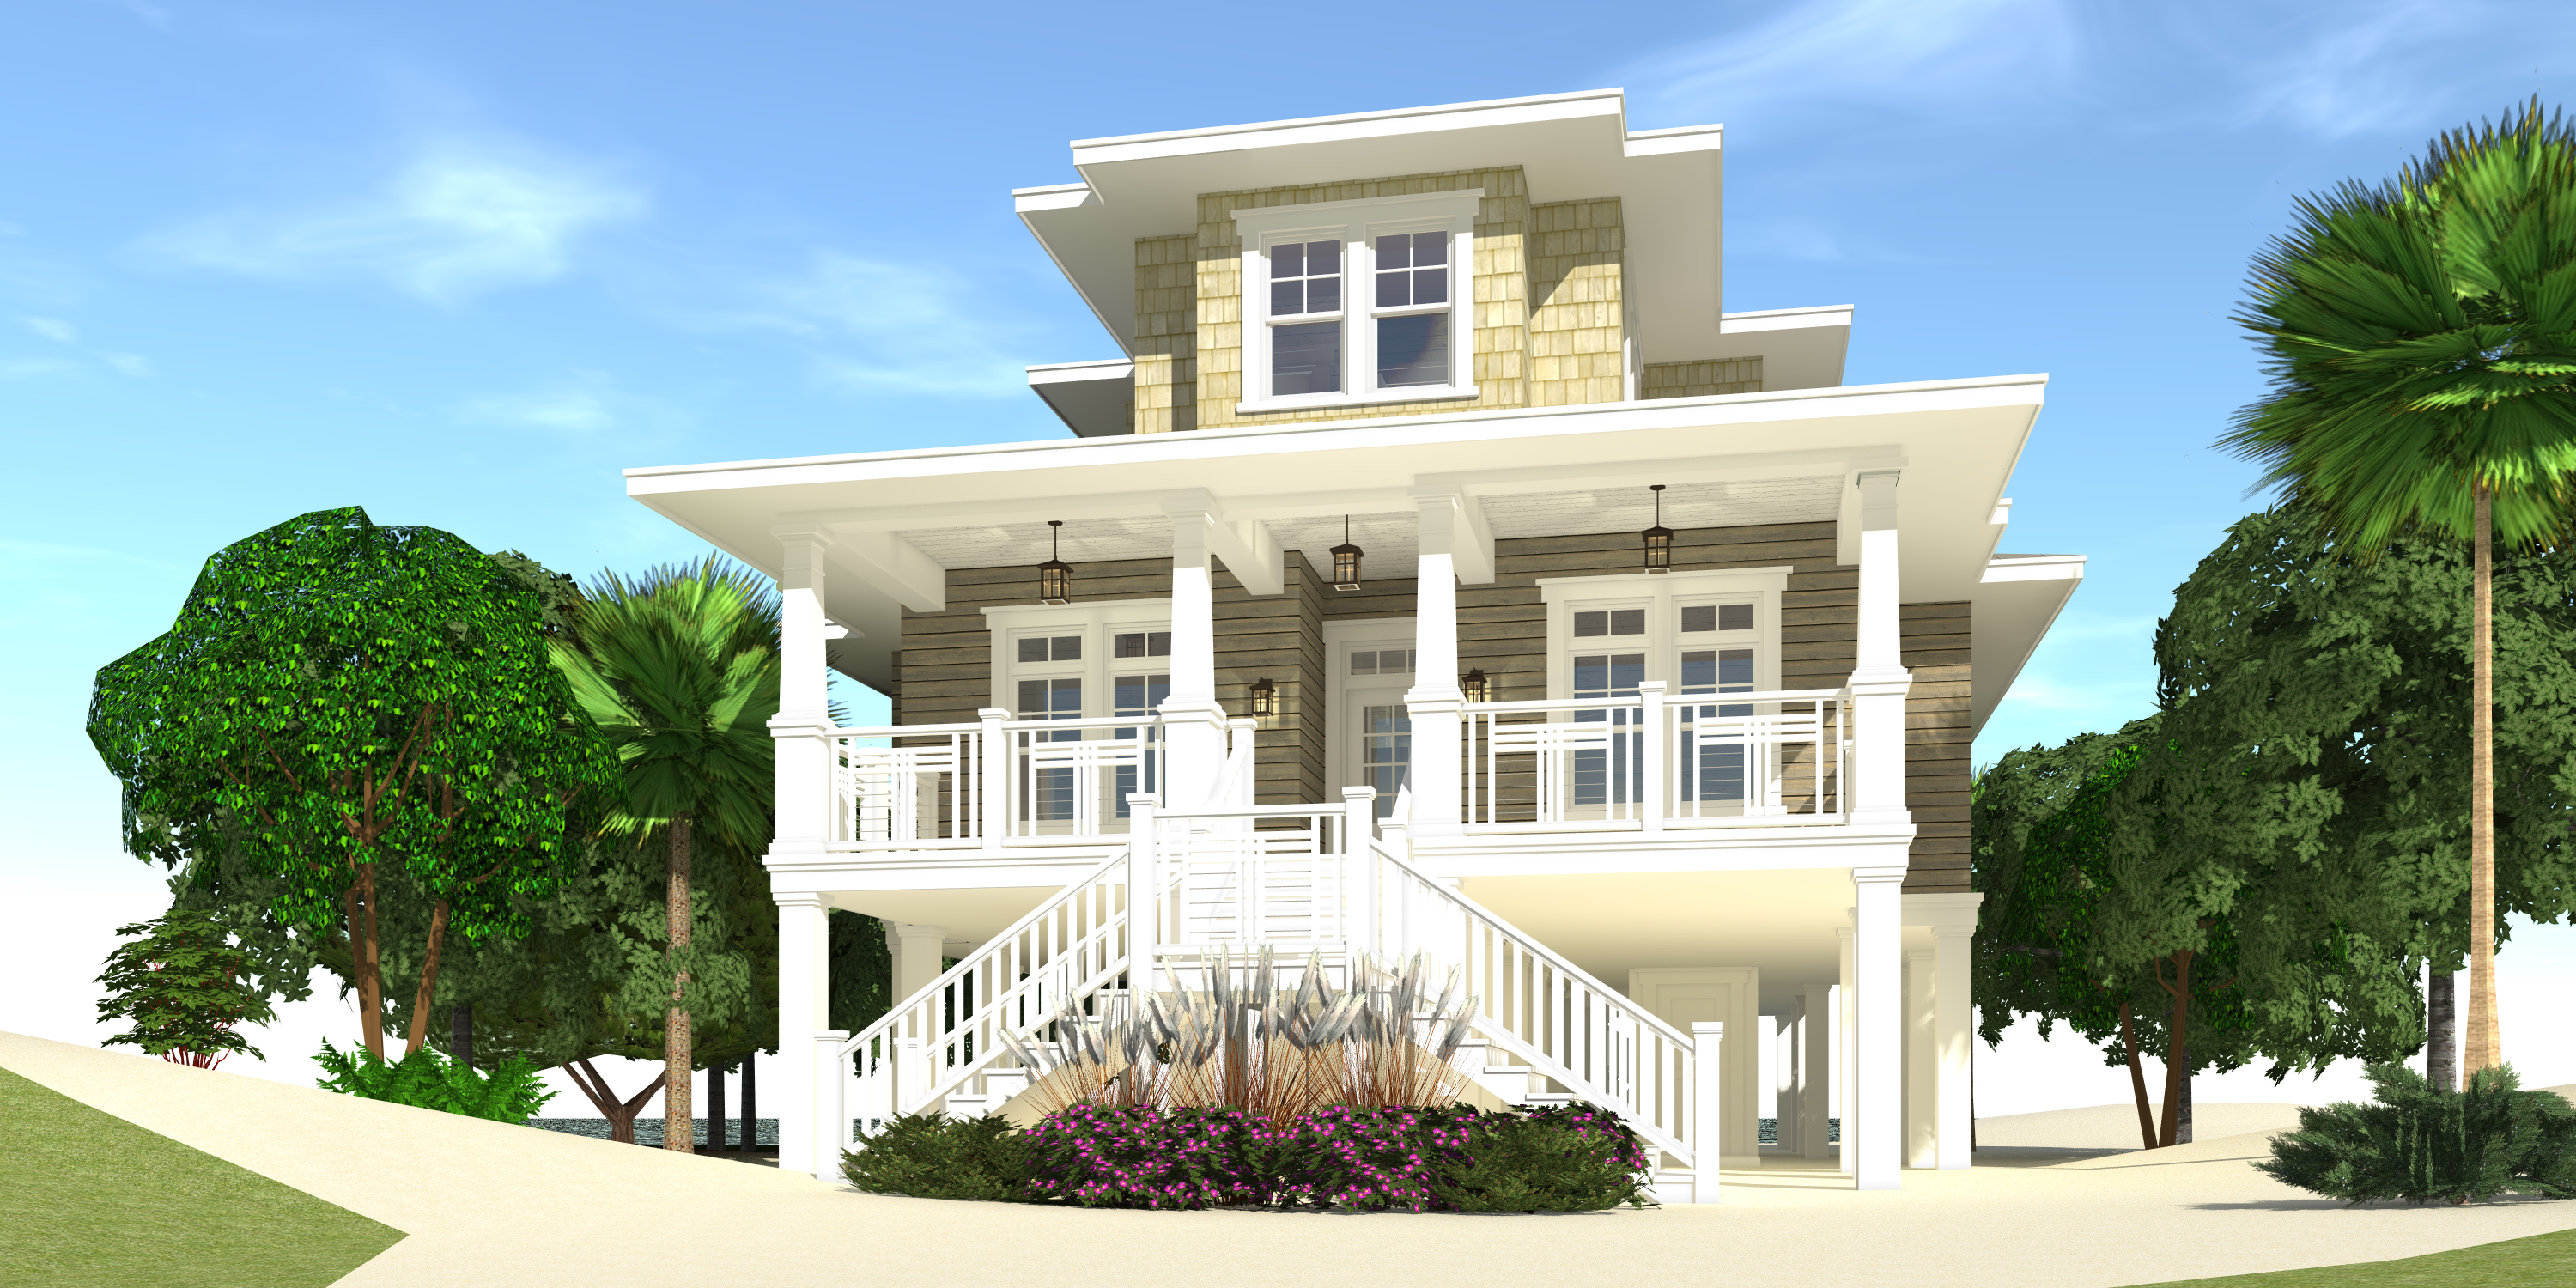 Fenton house plan by tyree house plans for Beach home plans